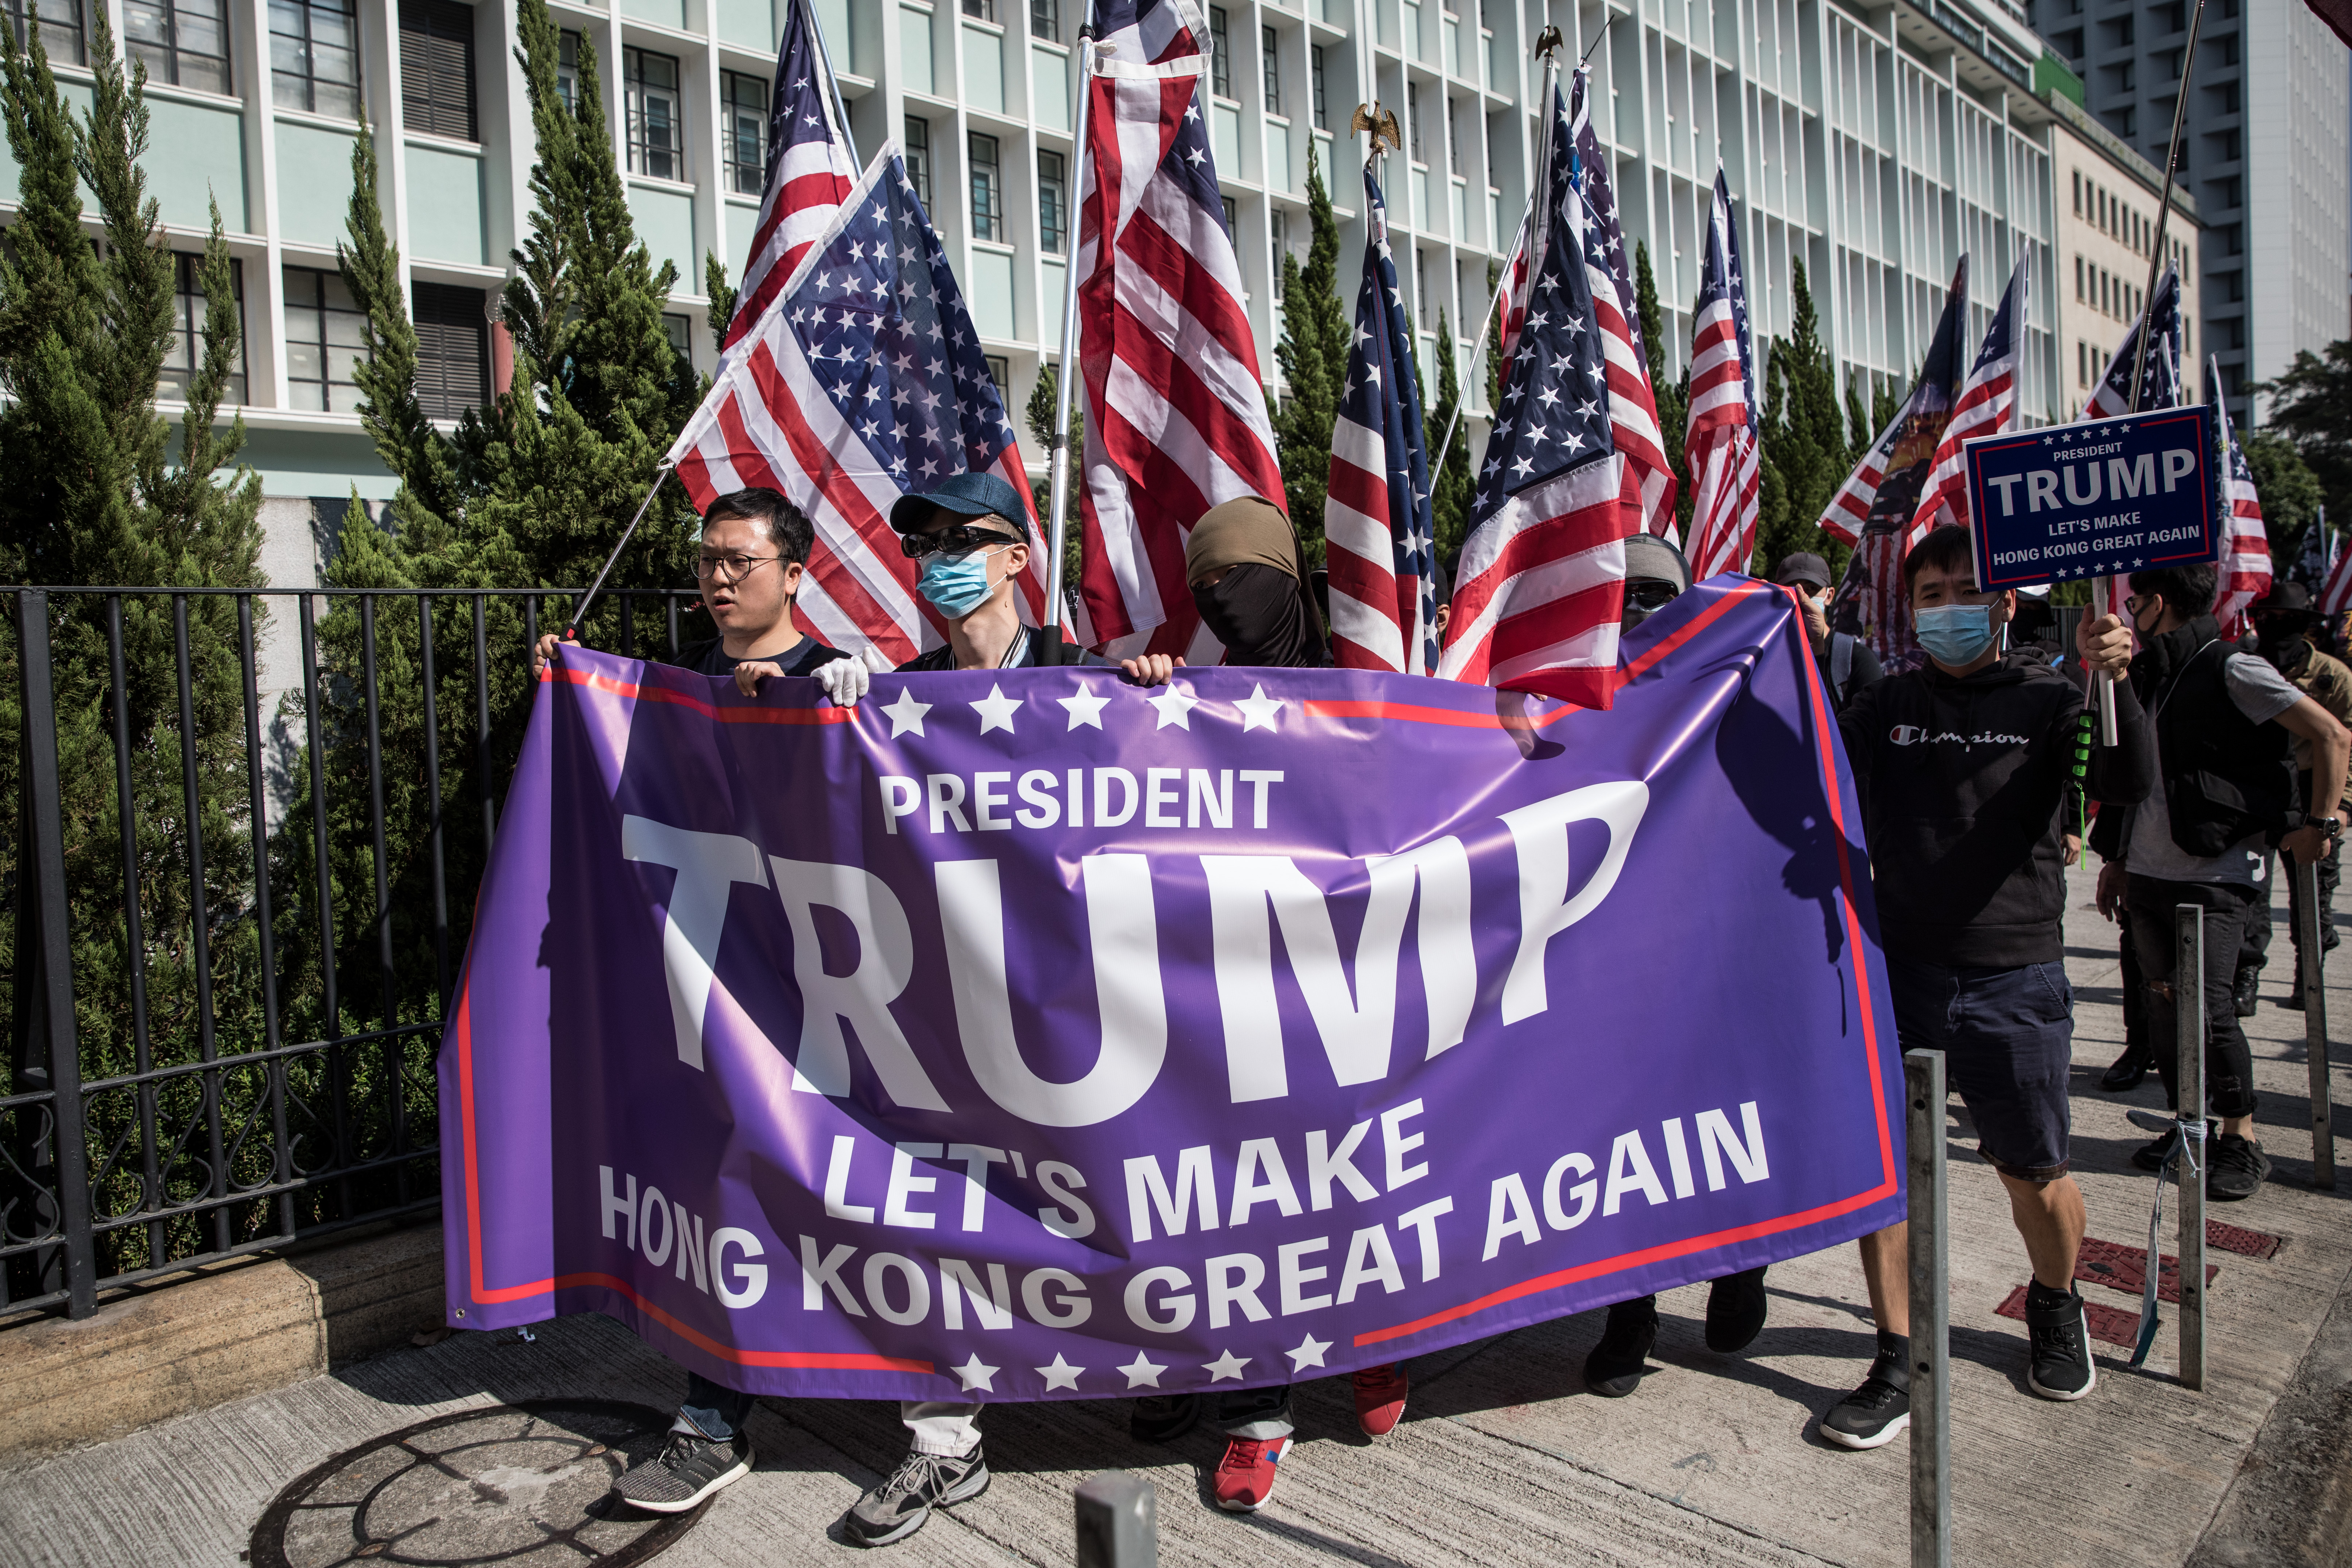 Pro-democracy protesters take part in a March of Gratitude rally to say thank you to the United States for their suppor t on December 01, 2019 in Hong Kong, China. (Chris McGrath/Getty Images)